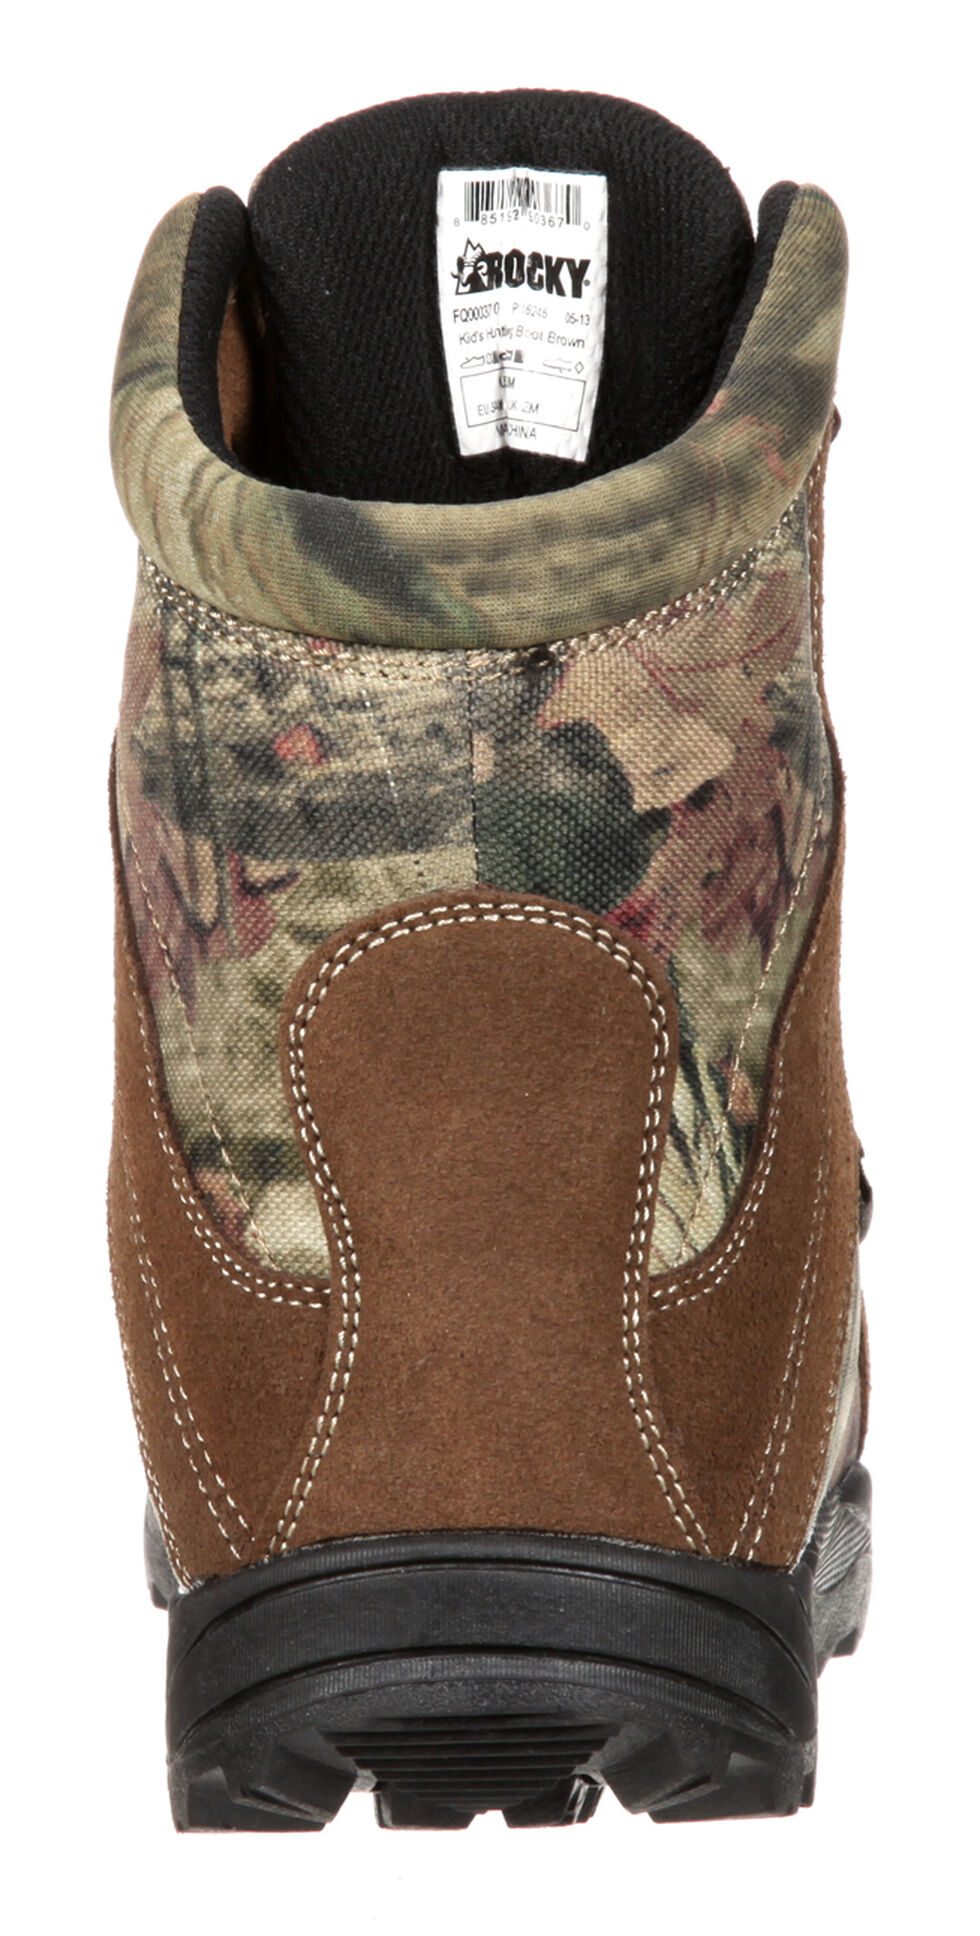 Rocky Youth Boys' Hunting Waterproof Insulated Boots, Brown, hi-res